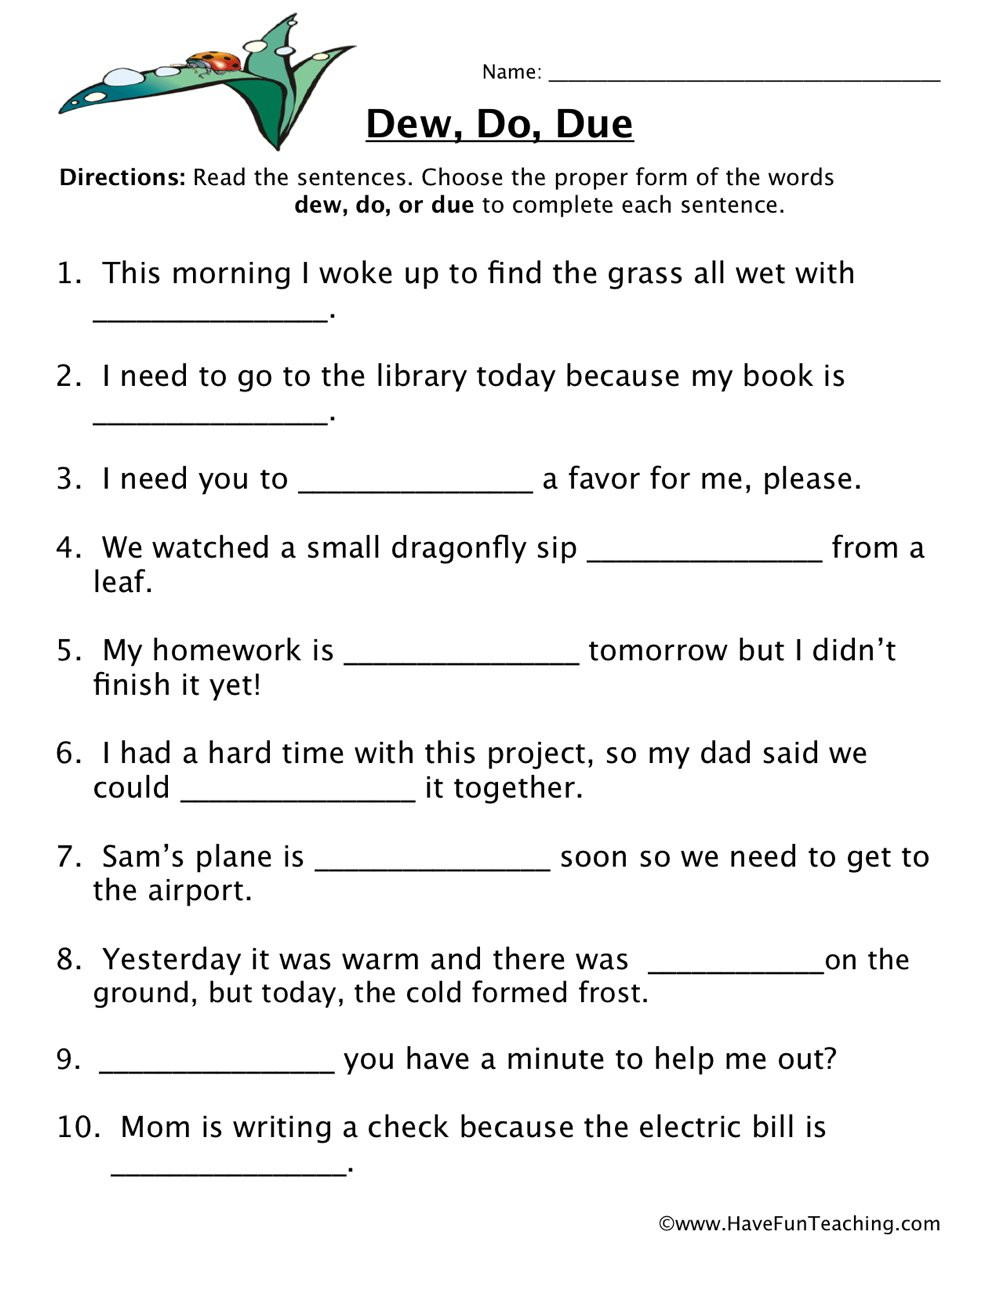 Homophones Worksheets for Grade 5 Dew Do Due Homophones Worksheet